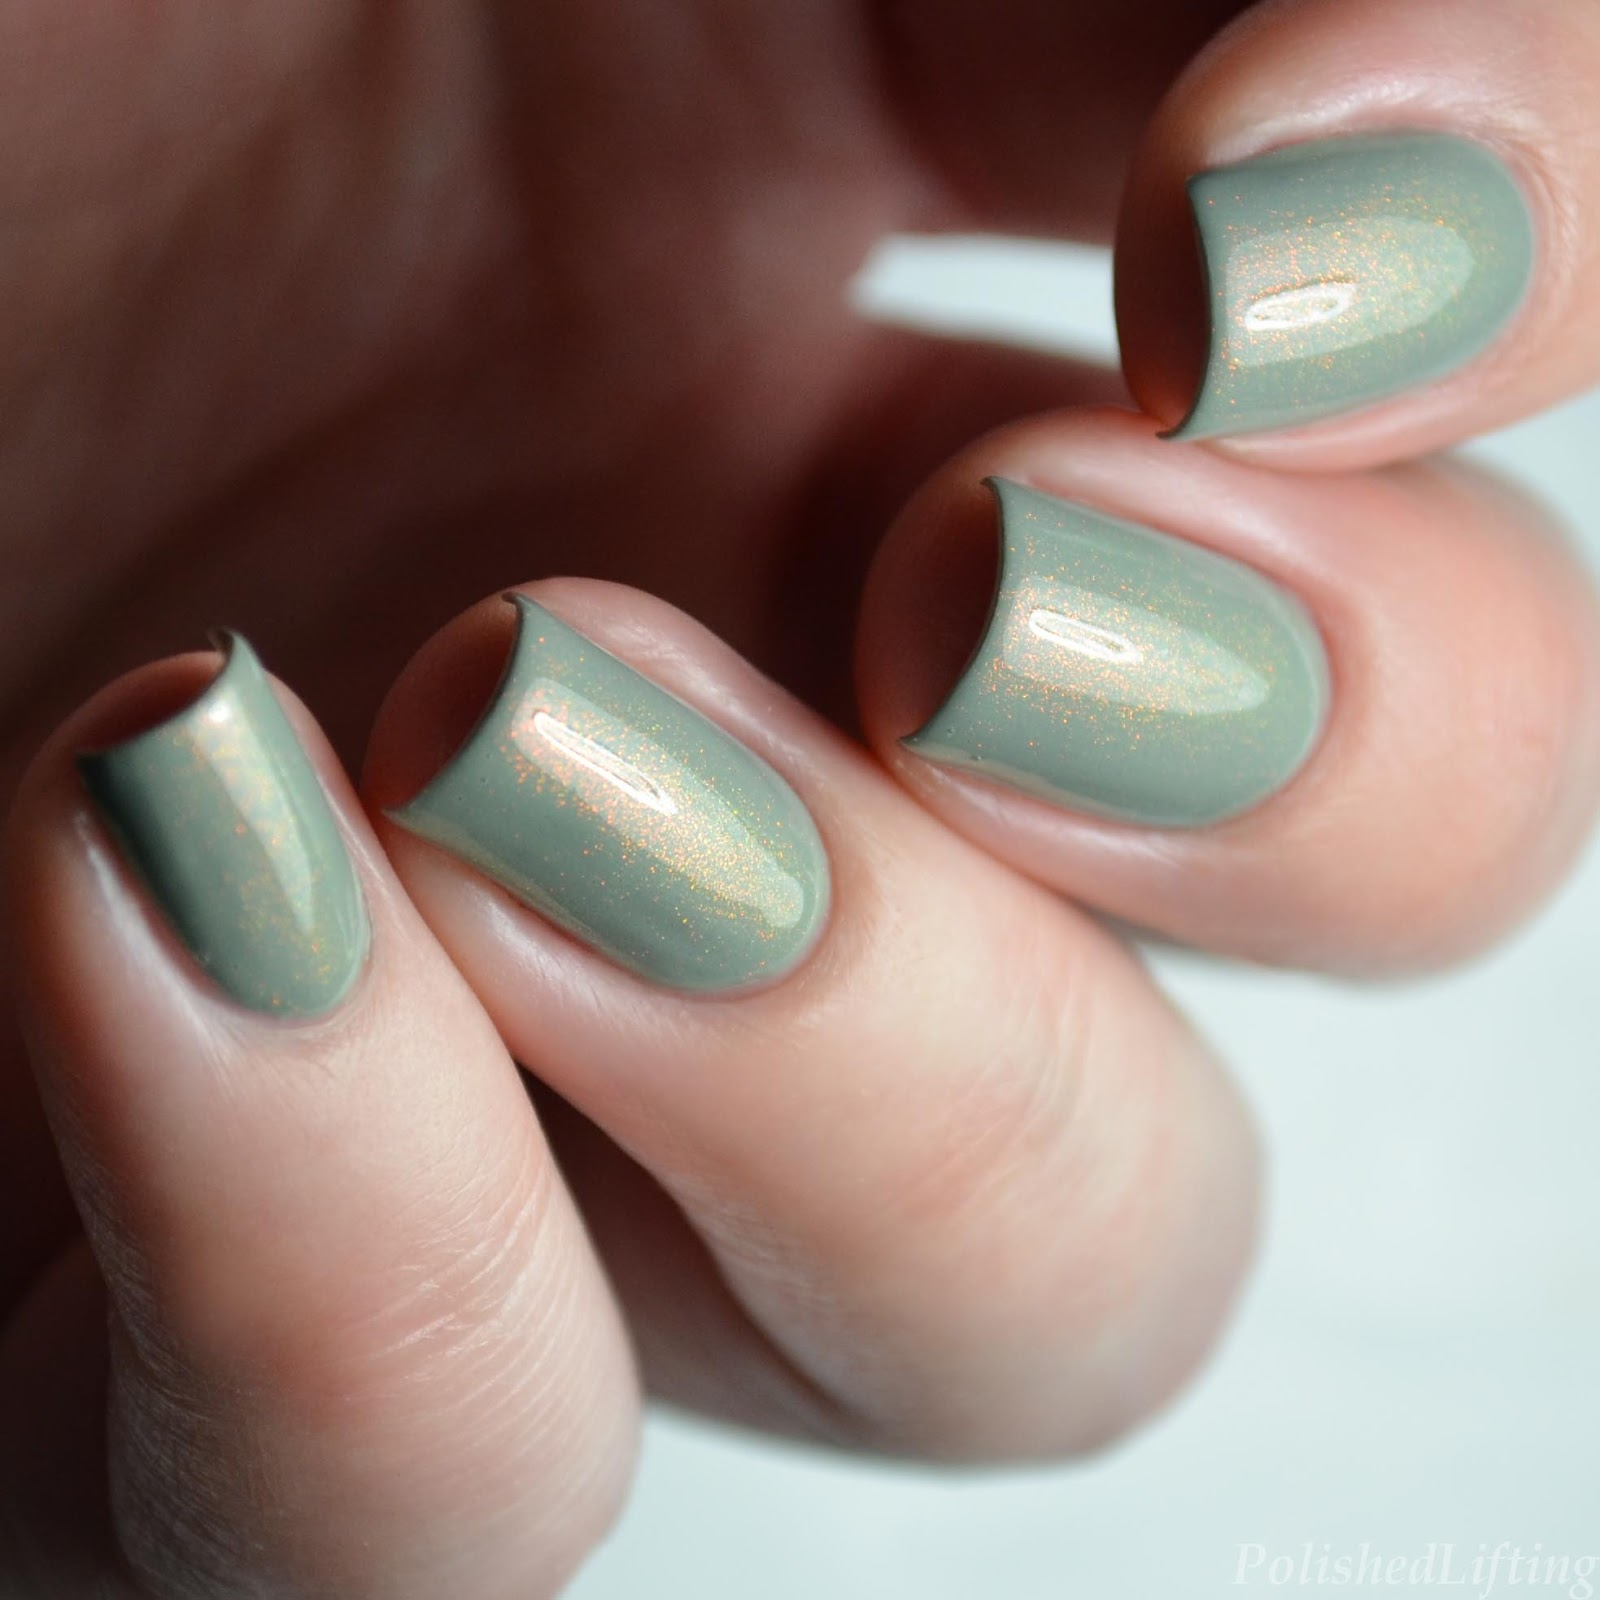 Polished Lifting: ILNP The Magician over Morgan Taylor Oh Parachute